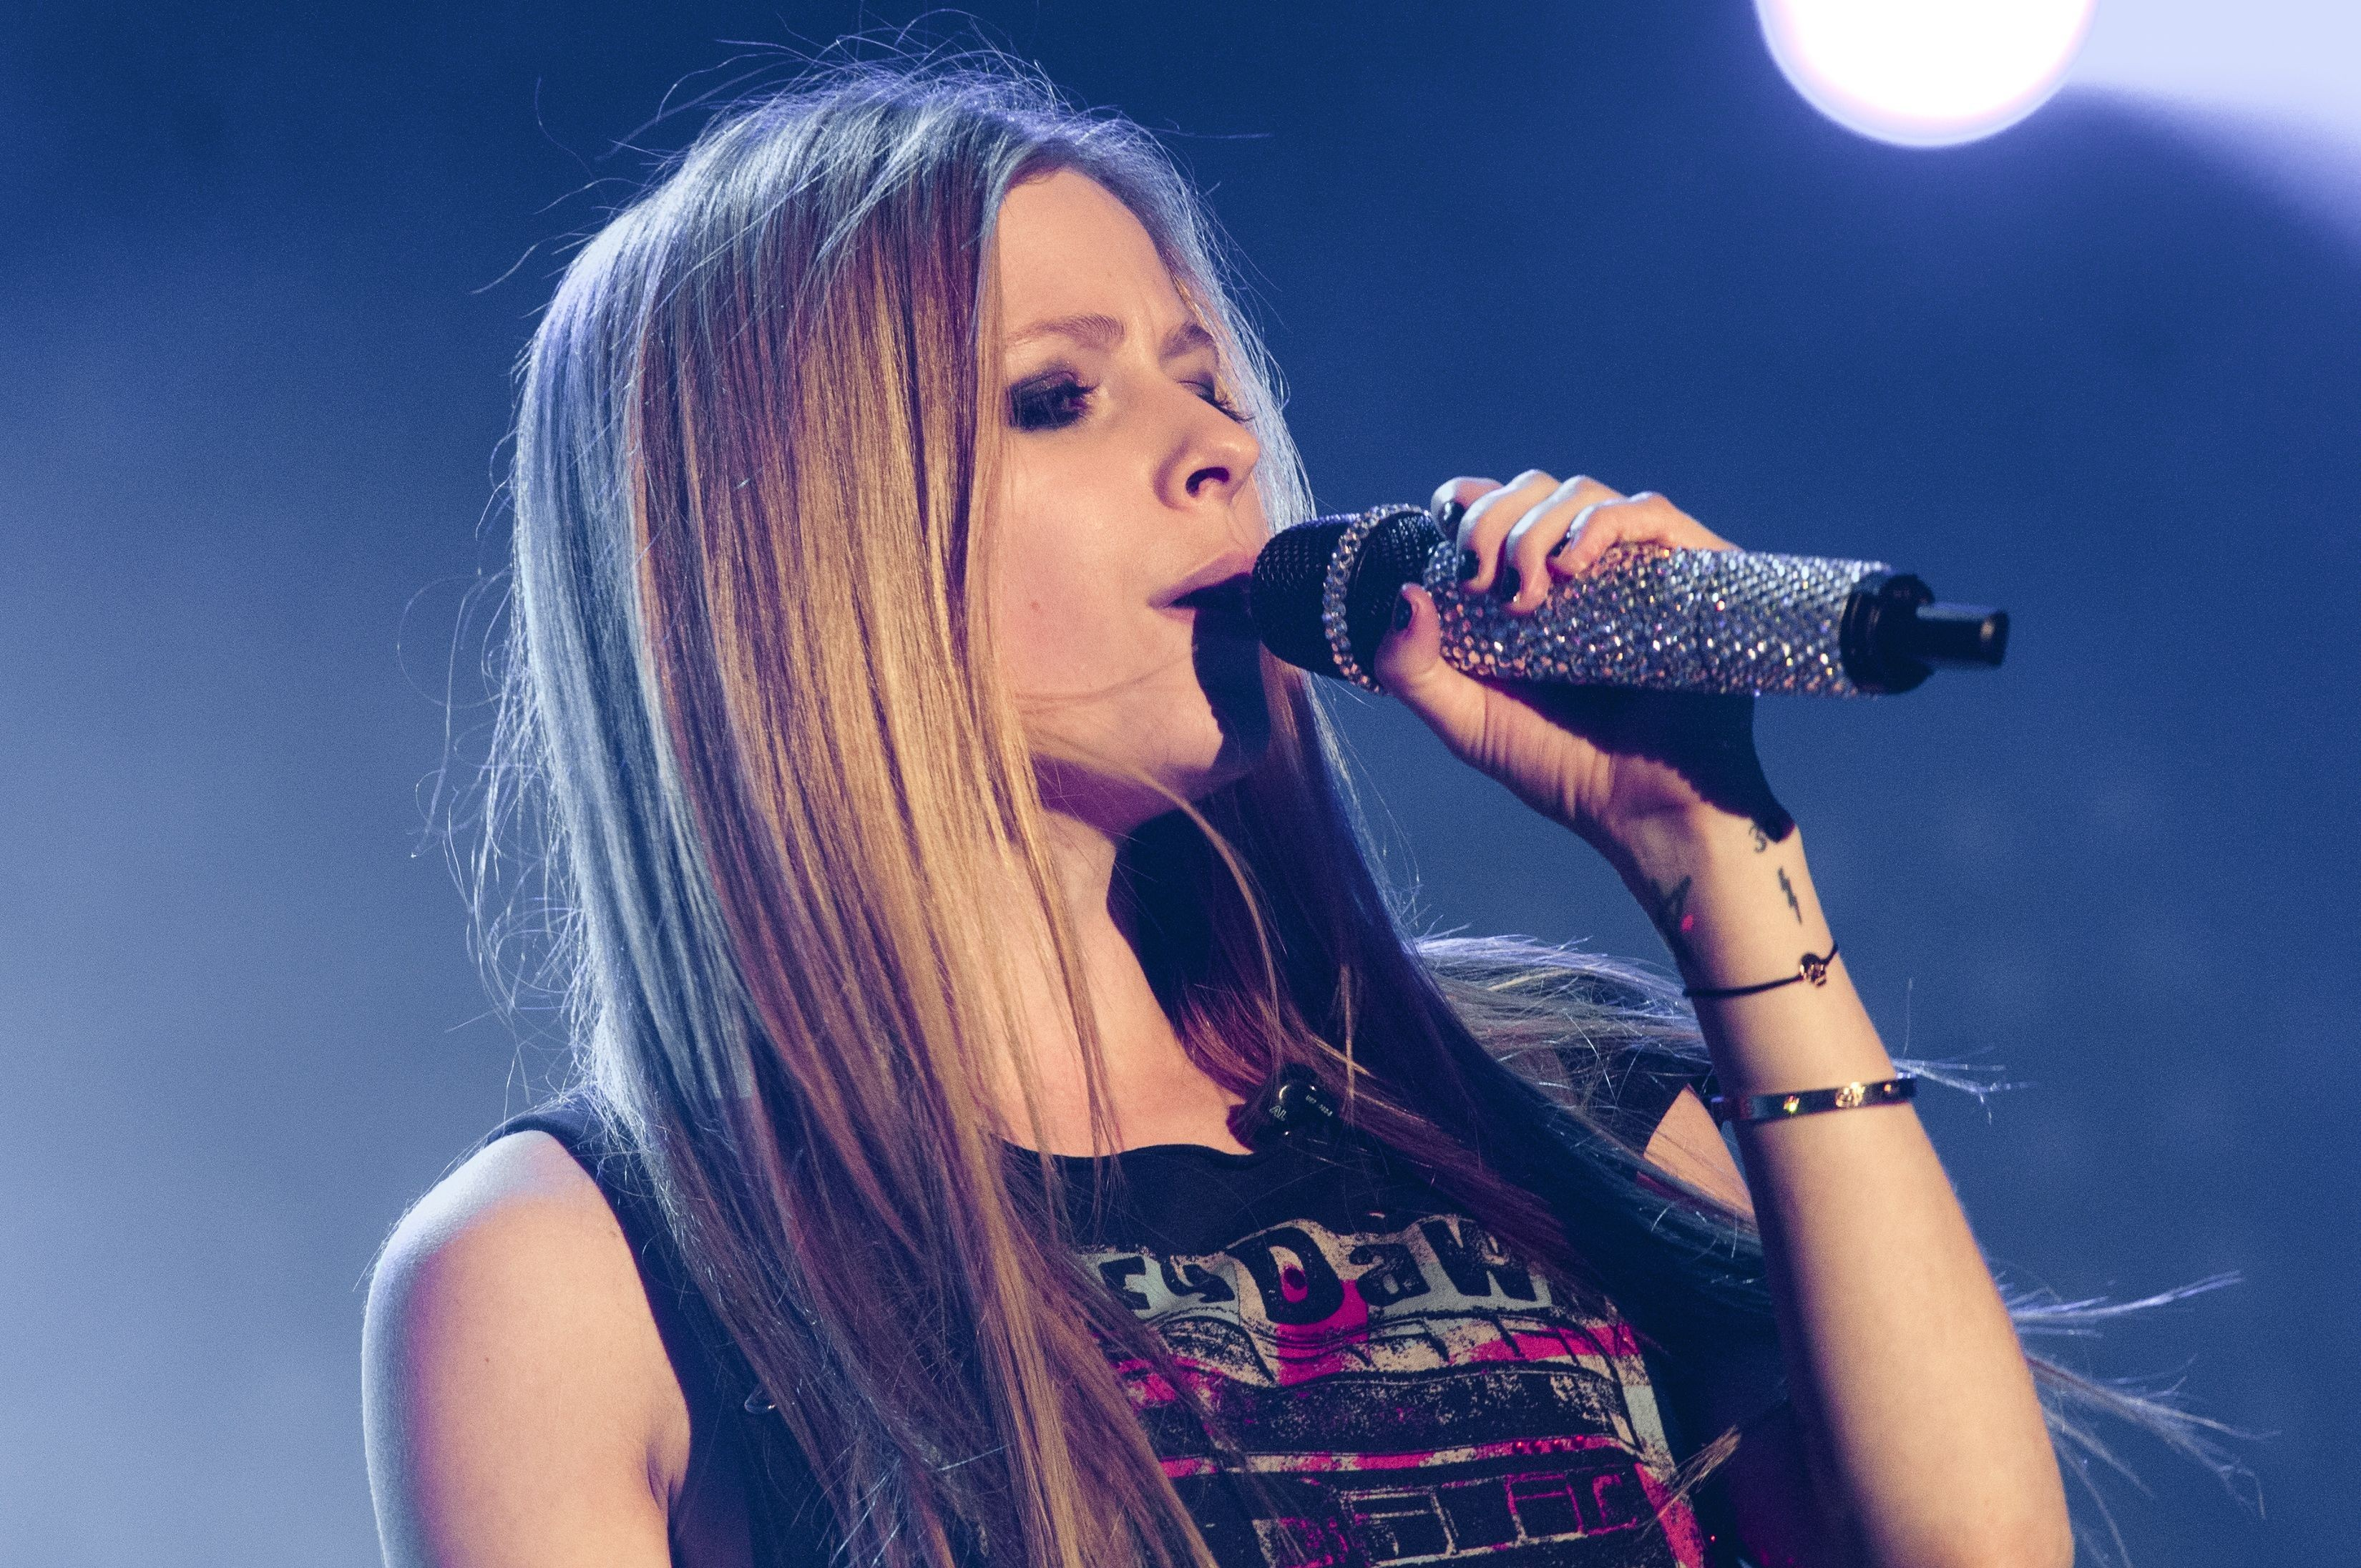 Avril Lavigne France live HD Wallpaper